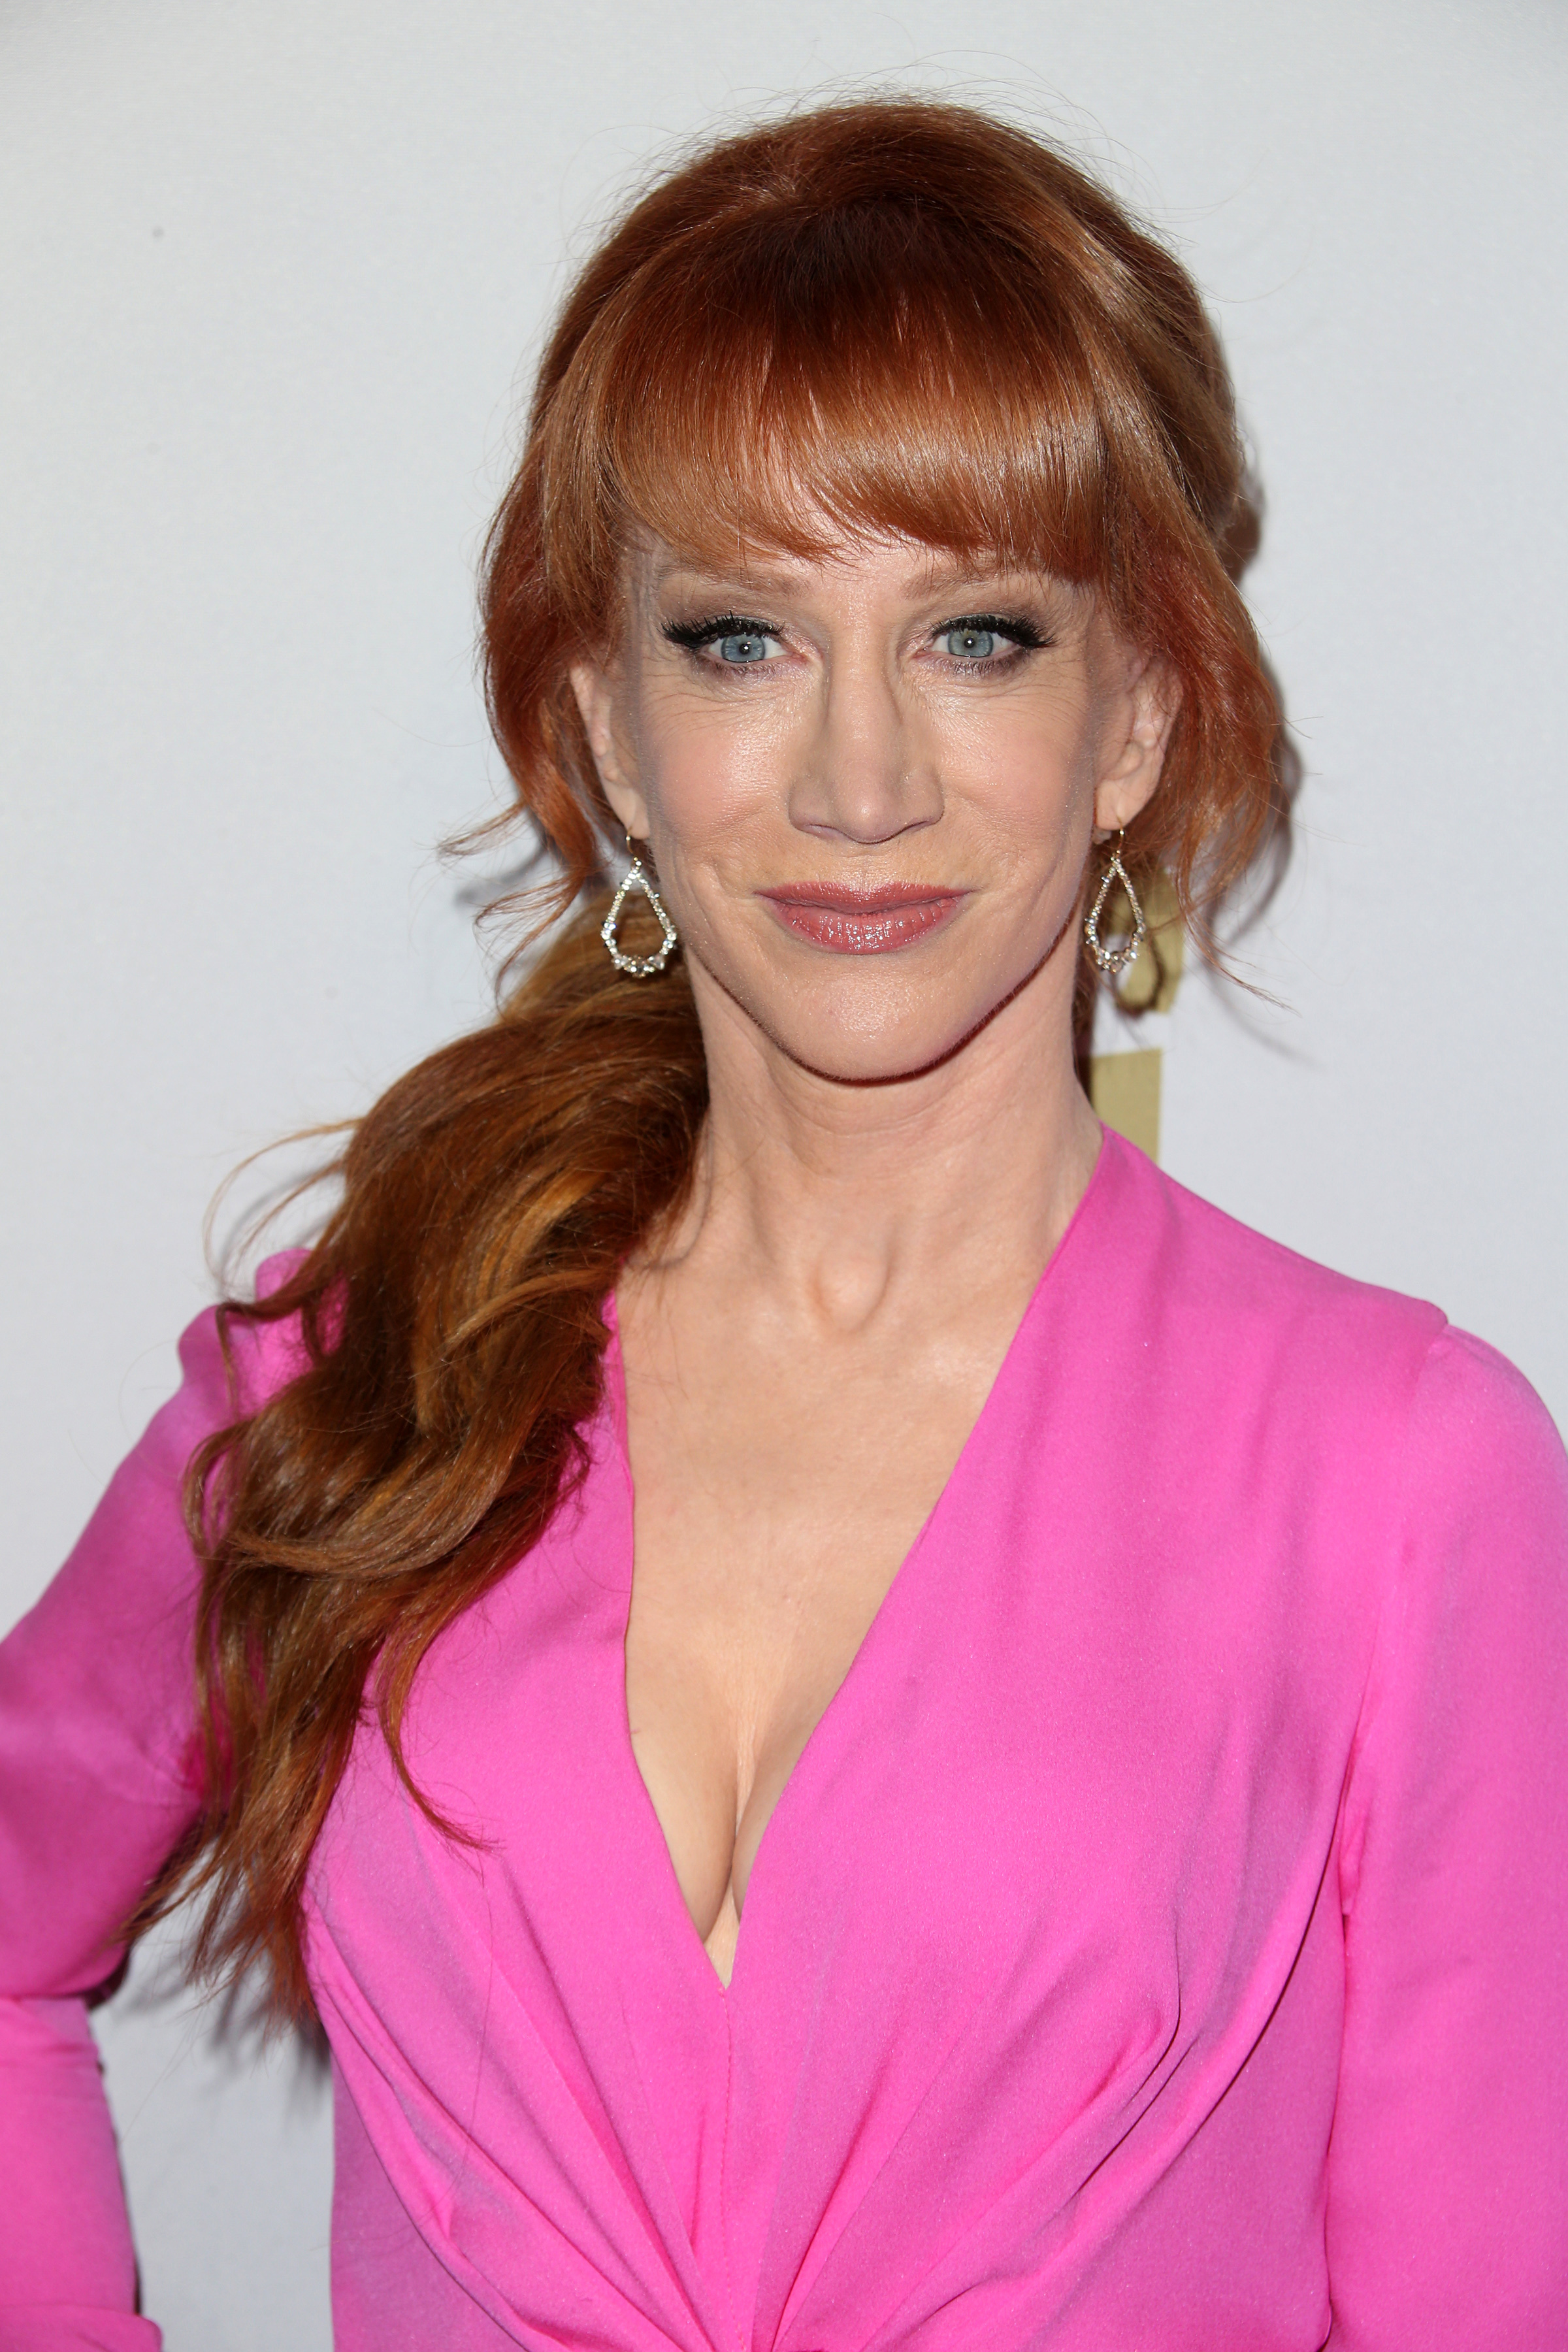 Kathy Griffin attends Clive Davis' pre Grammy Gala in Beverly Hills on Feb. 11, 2017.